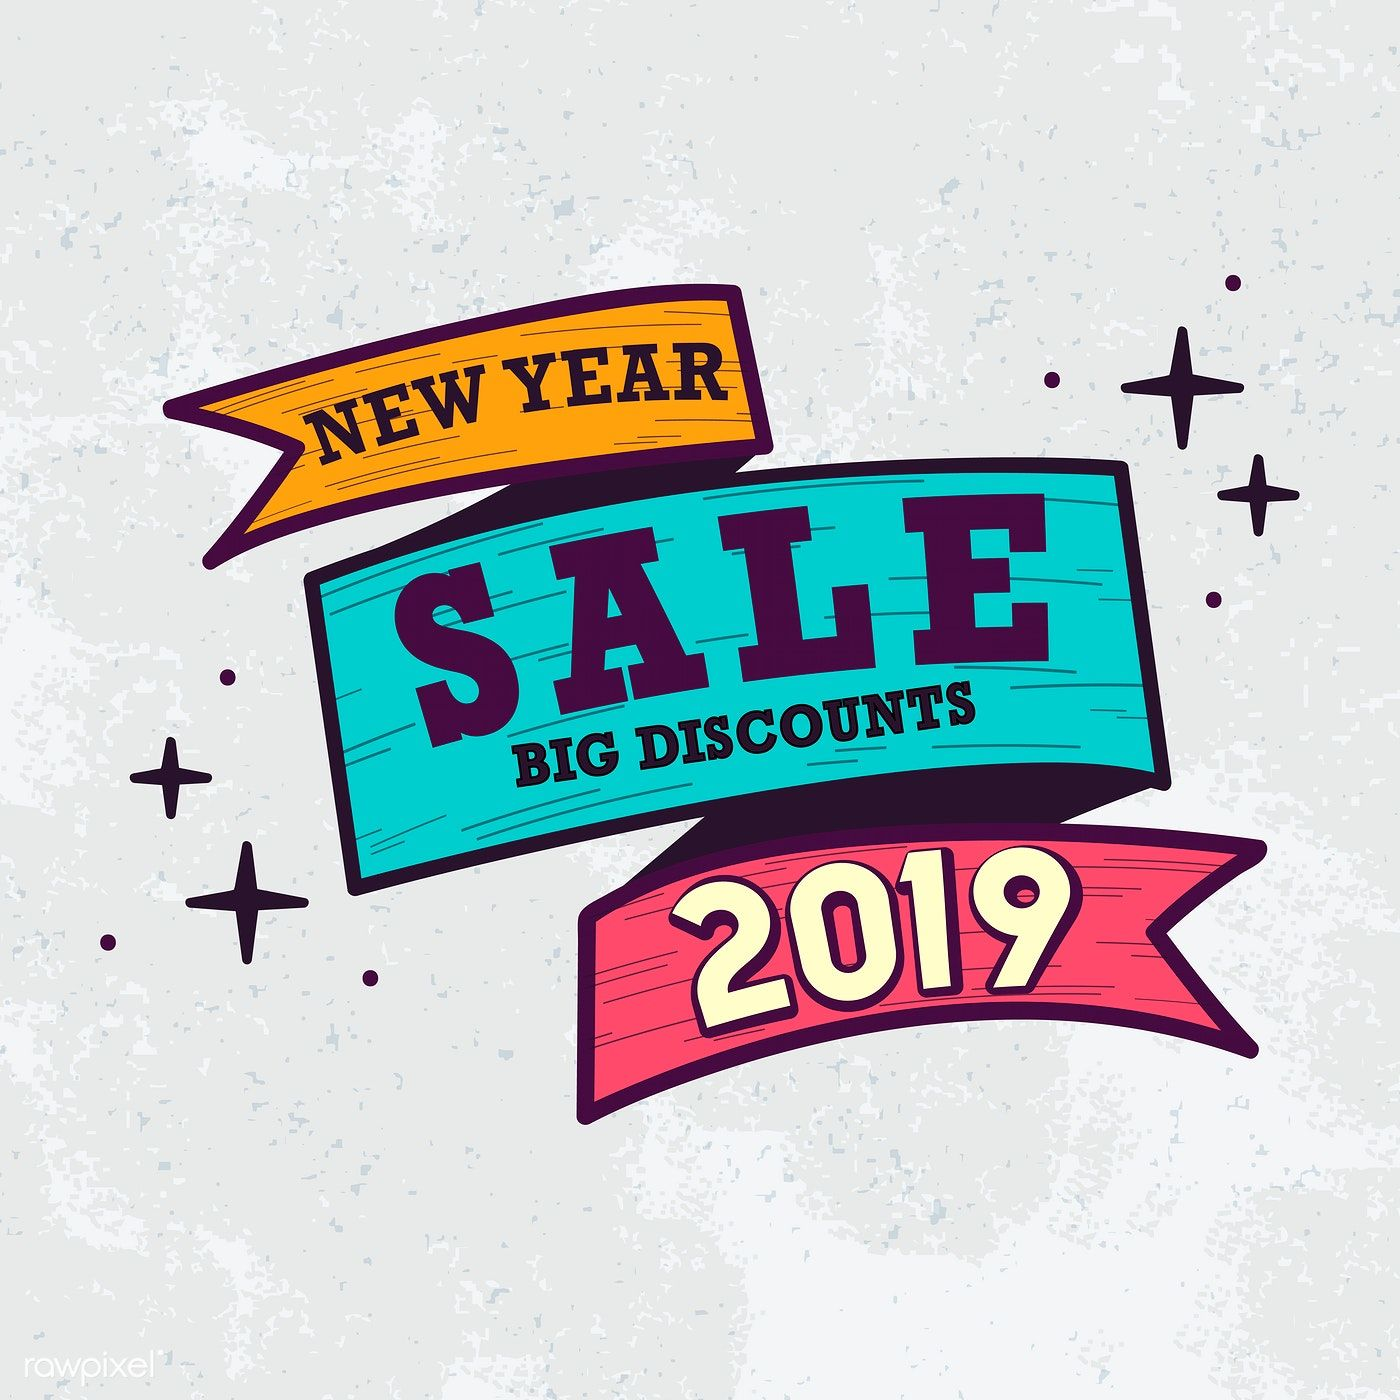 New Year 2019 Sale Emblem Vector Free Image By Rawpixel Com Chayanit Vector Free Newyear Vector